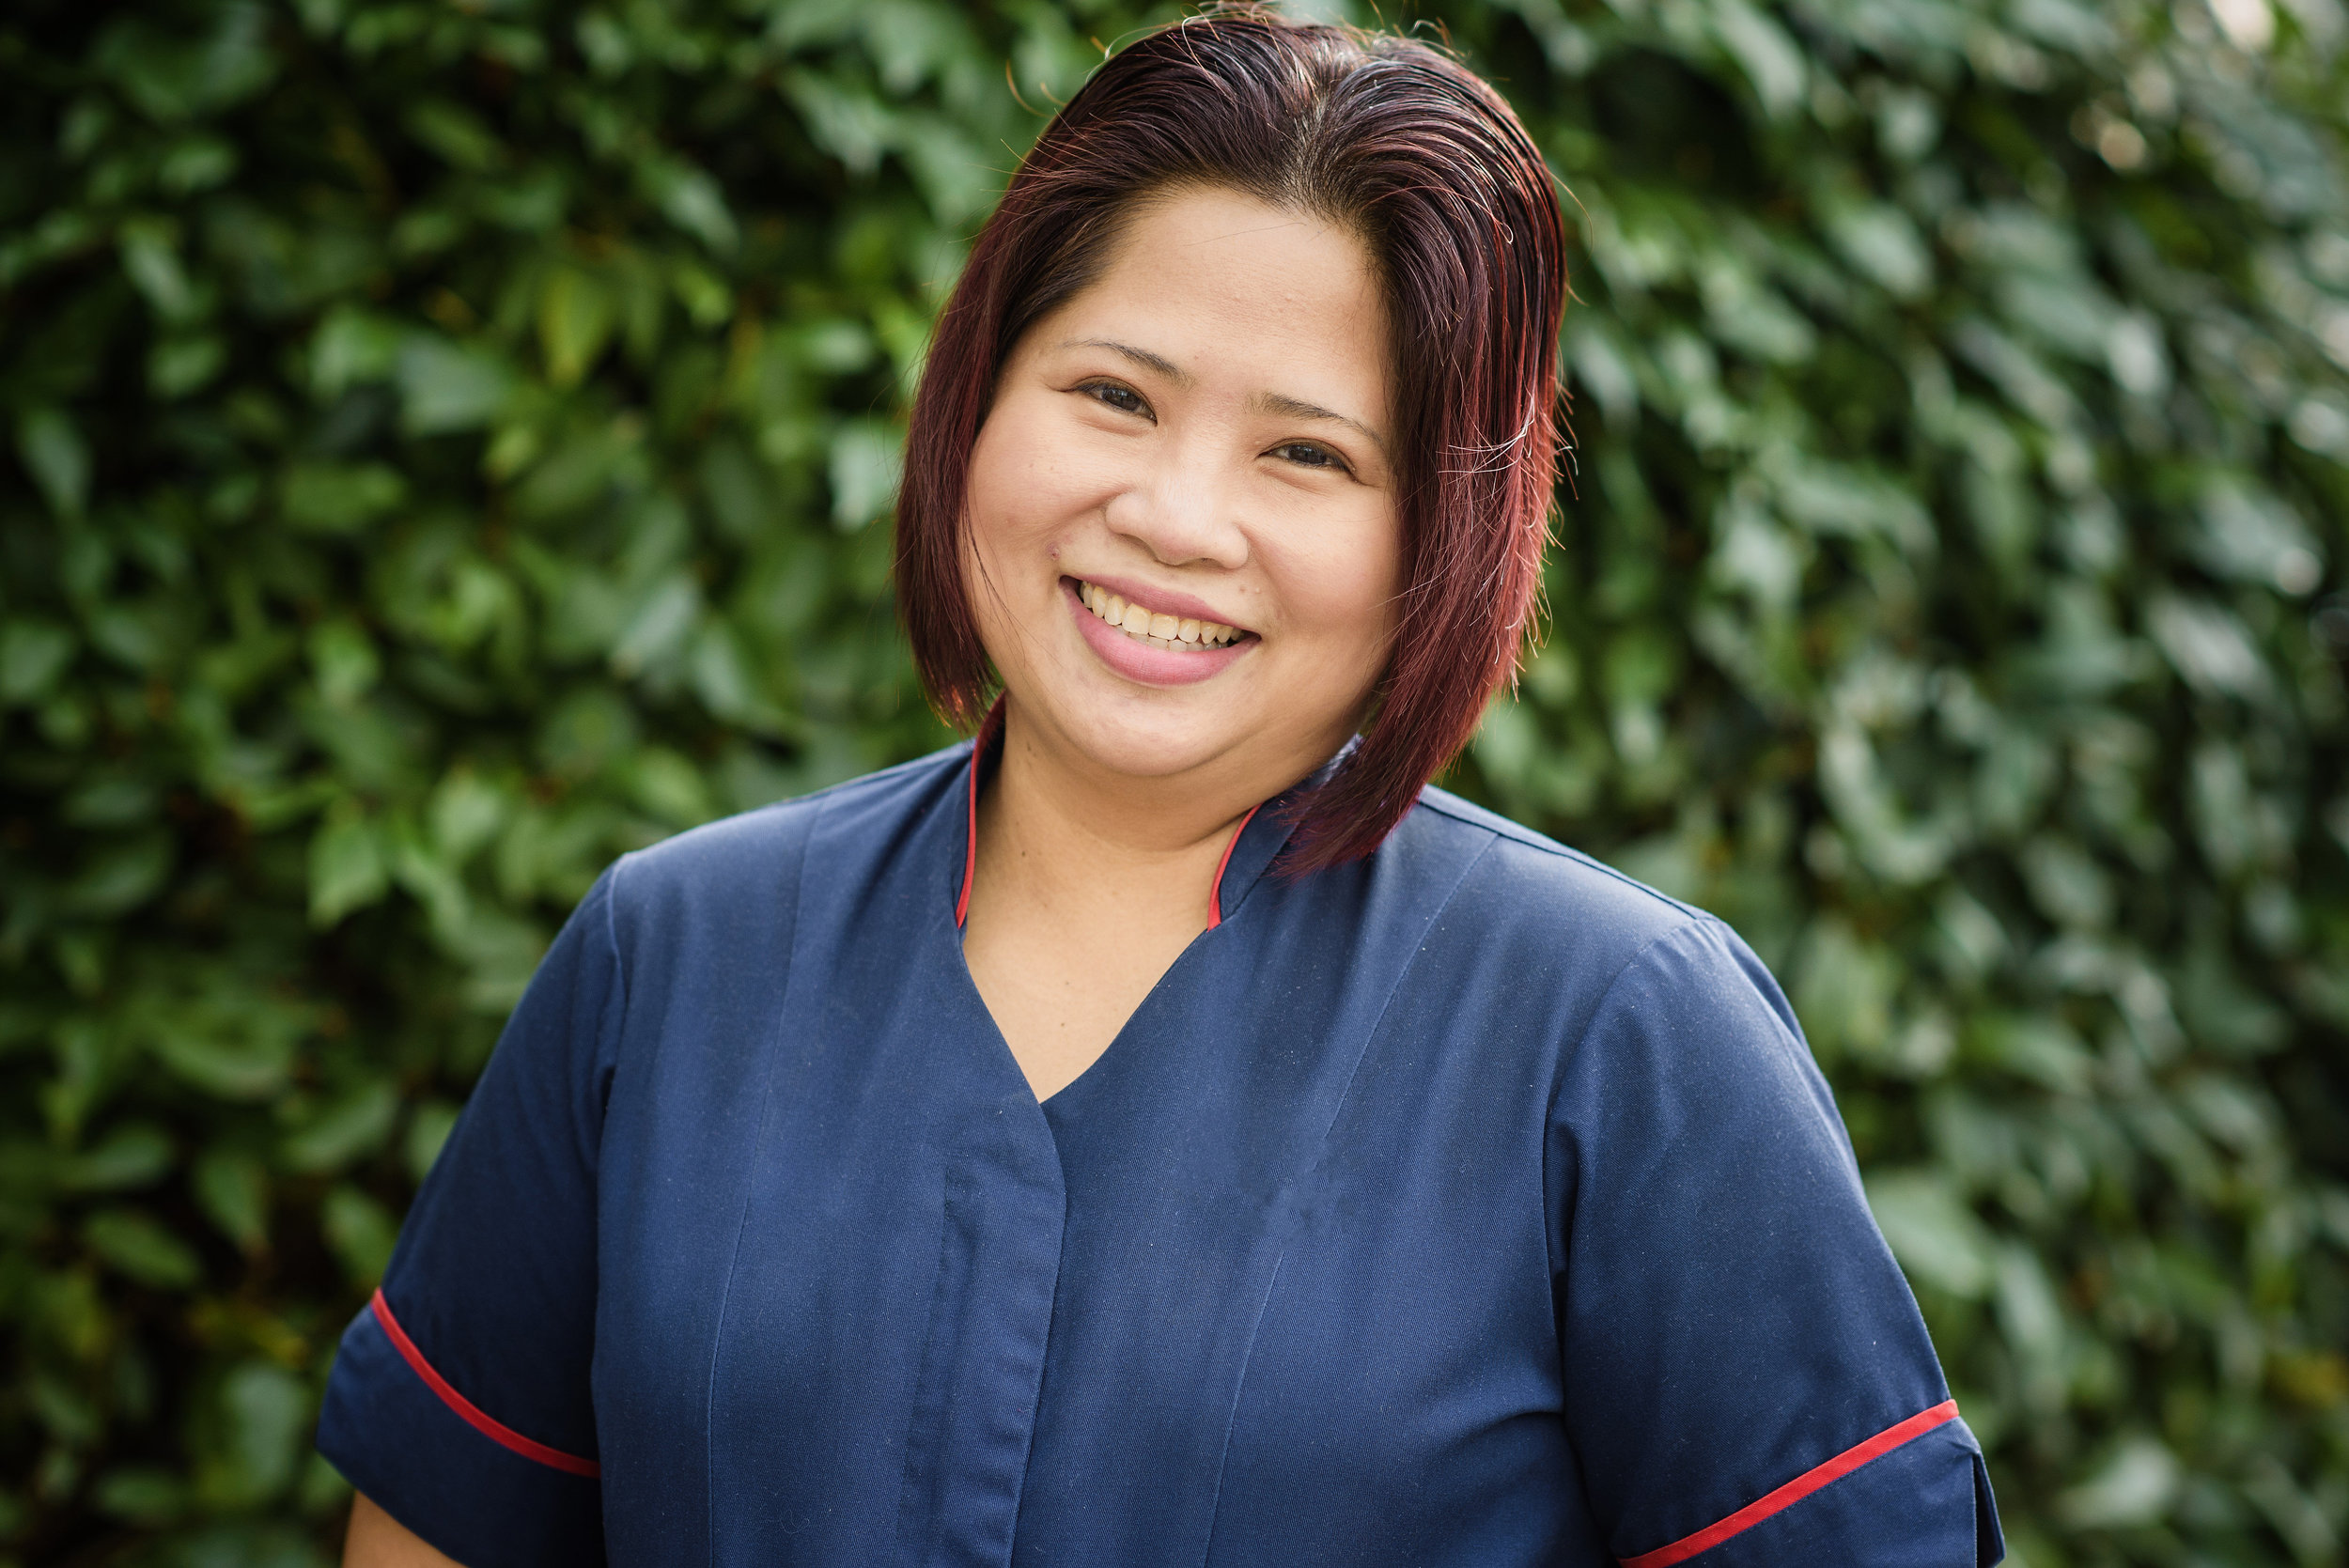 Headshot of a smiling lady outside | Corporate Photographer Aylesbury Buckinghamshire and Thame Oxfordshire